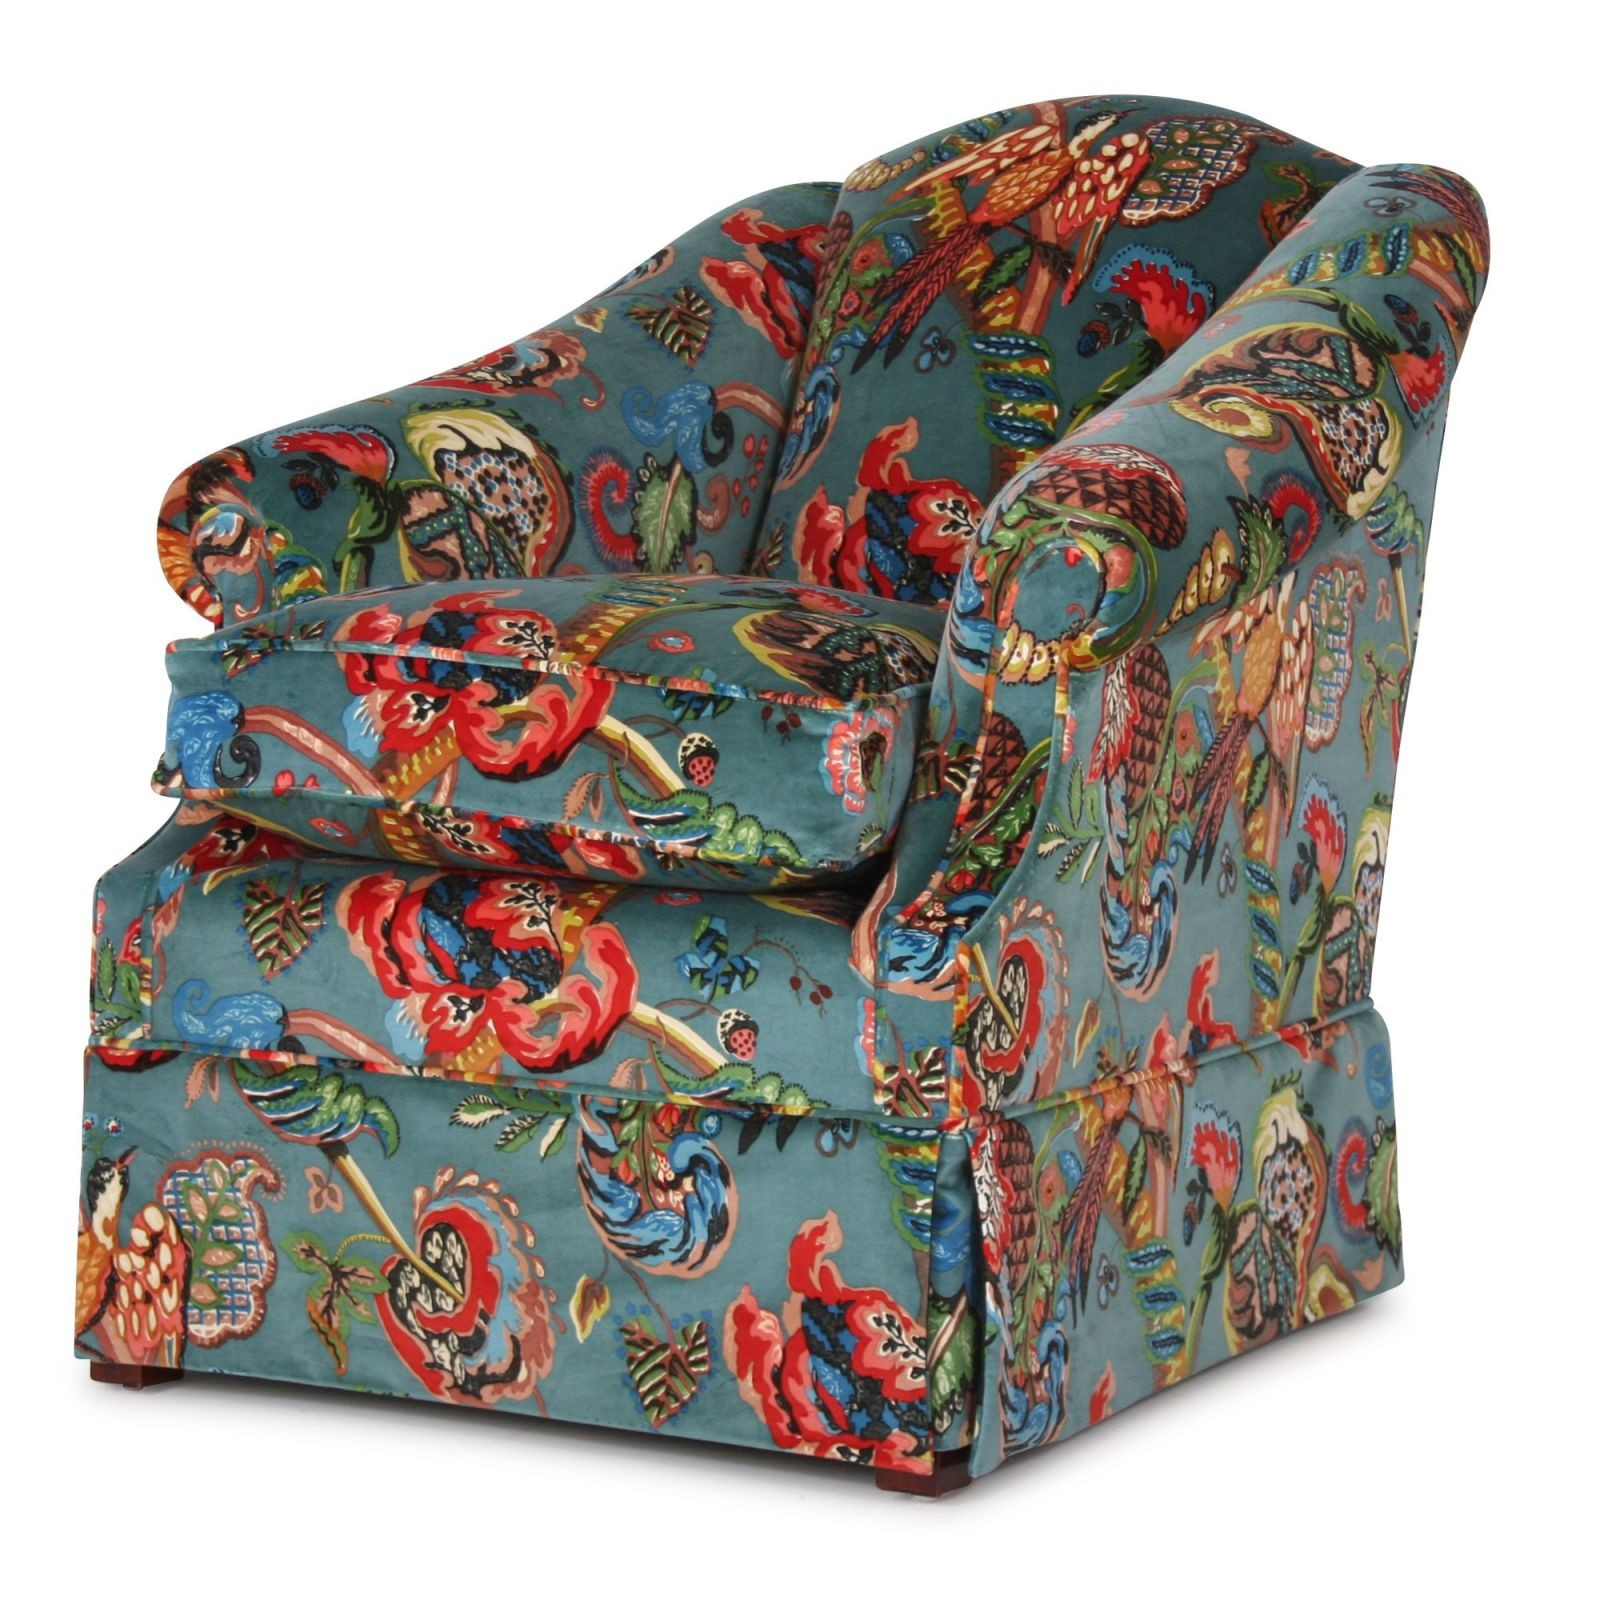 Coleridge low arm chair in Poppinjay velvet